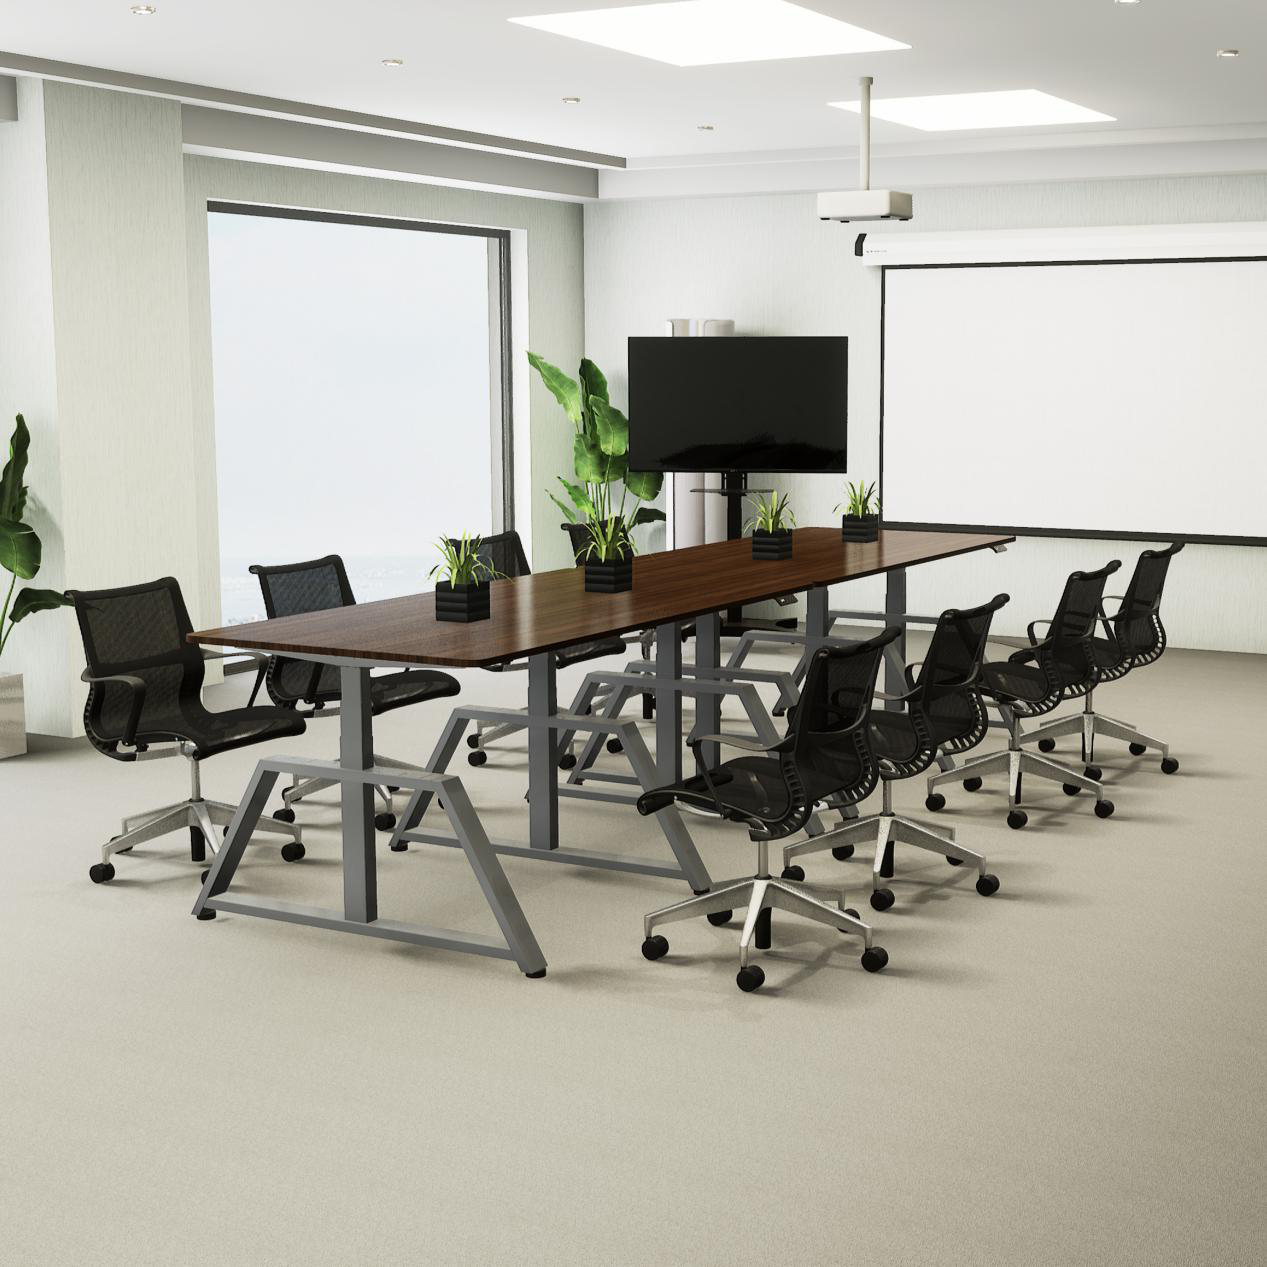 Standing Height Adjustable Conference Tables